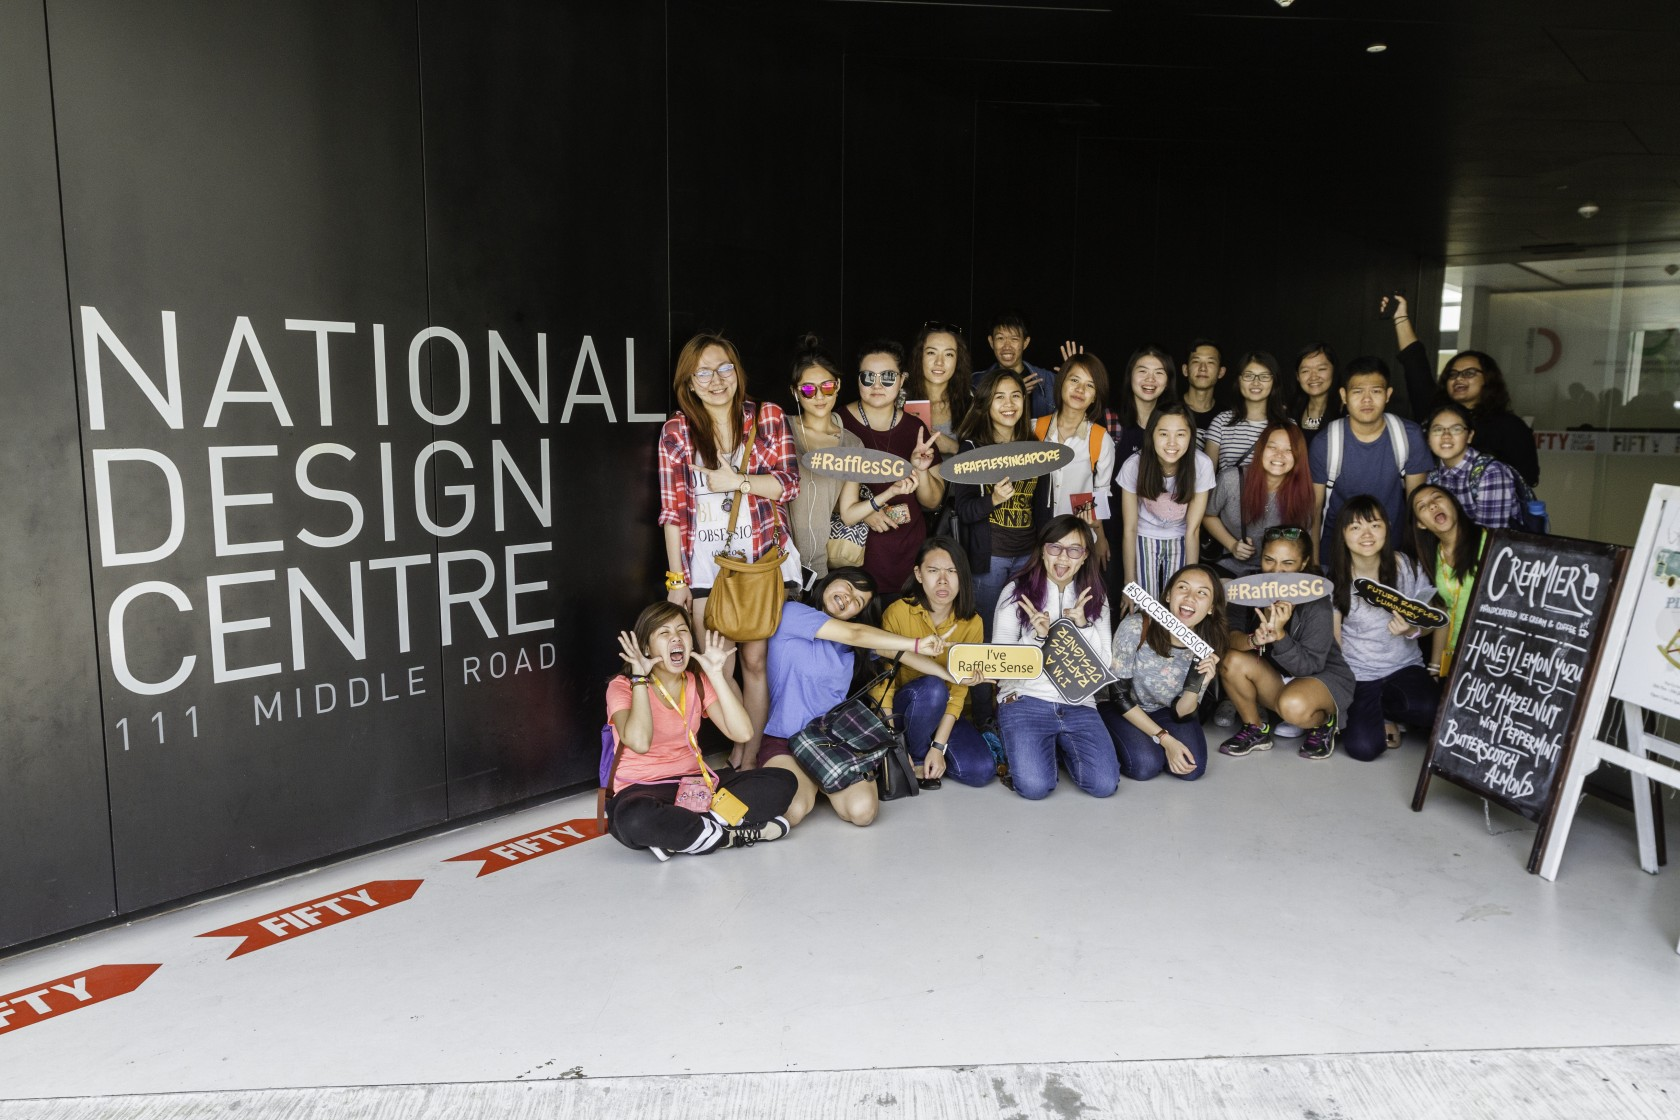 DR11264 DISCOVERING SINGAPORE THROUGH ART AND DESIGN